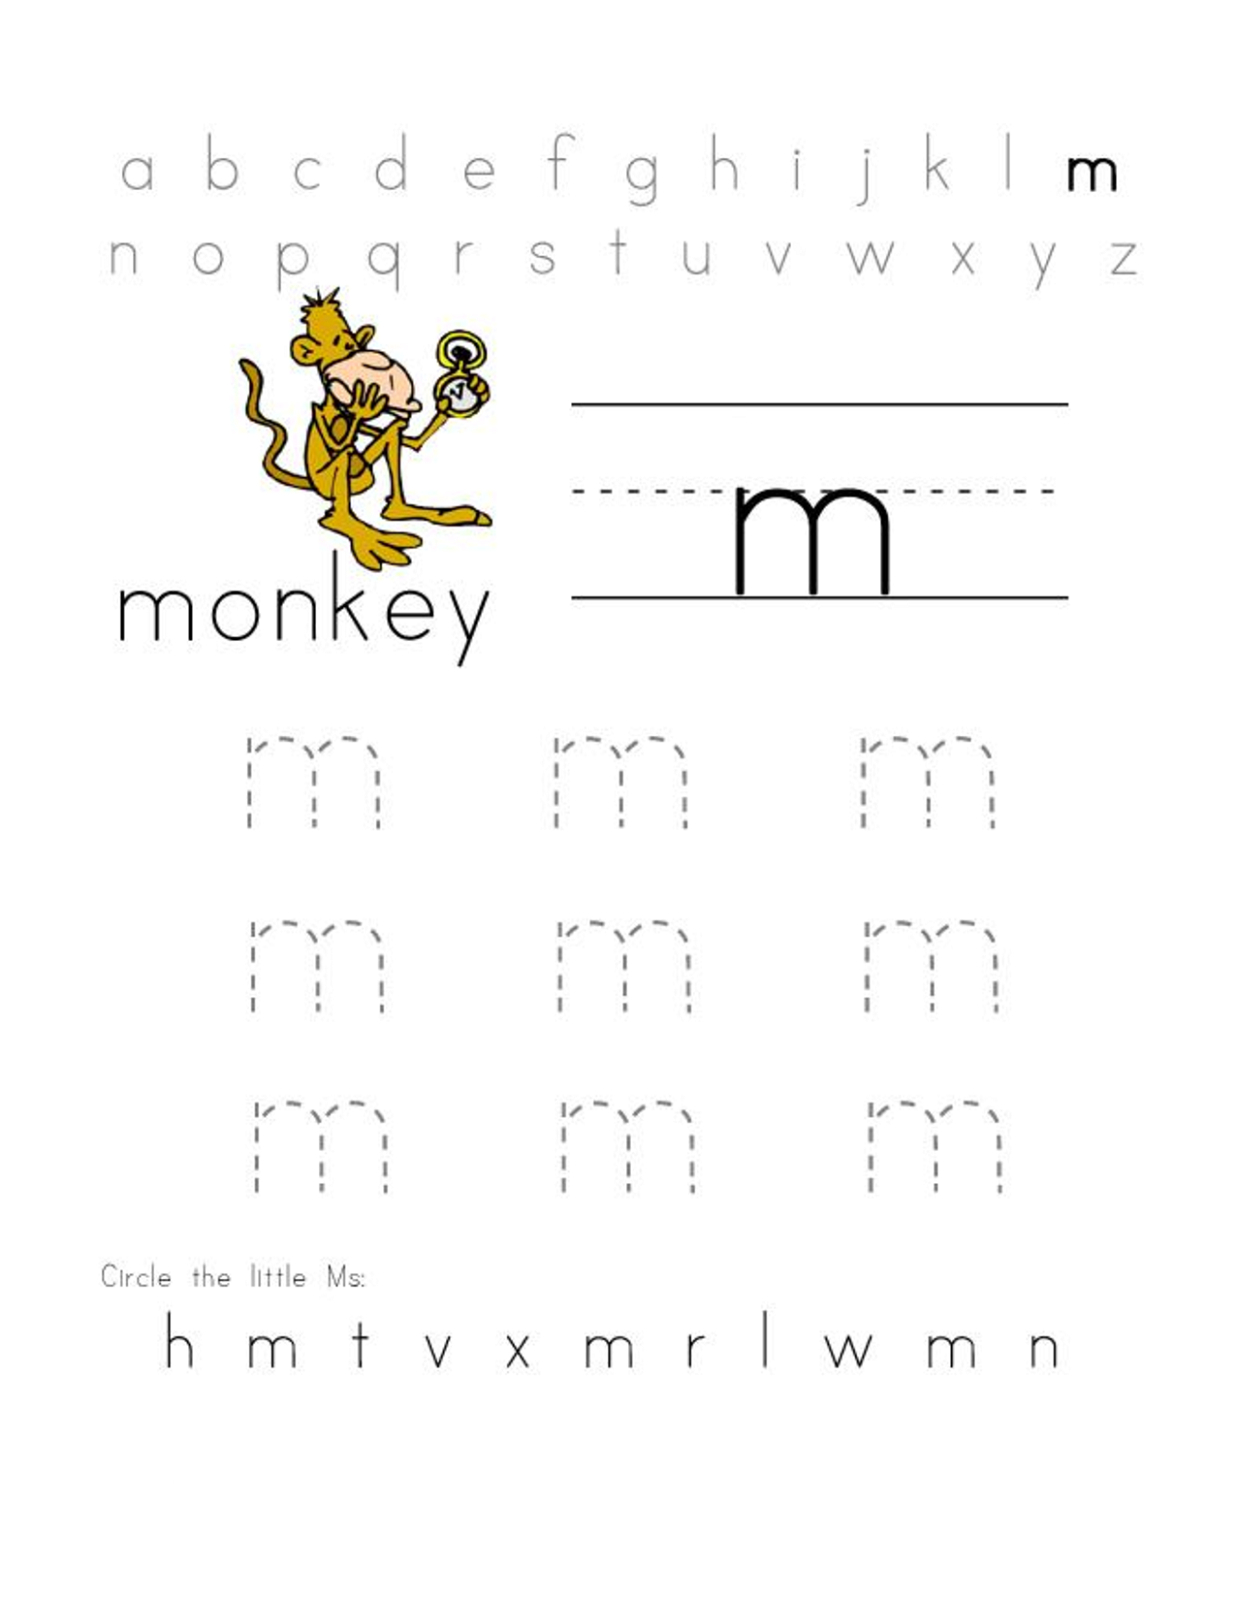 Missing Alphabet Letters Worksheet Free Printable